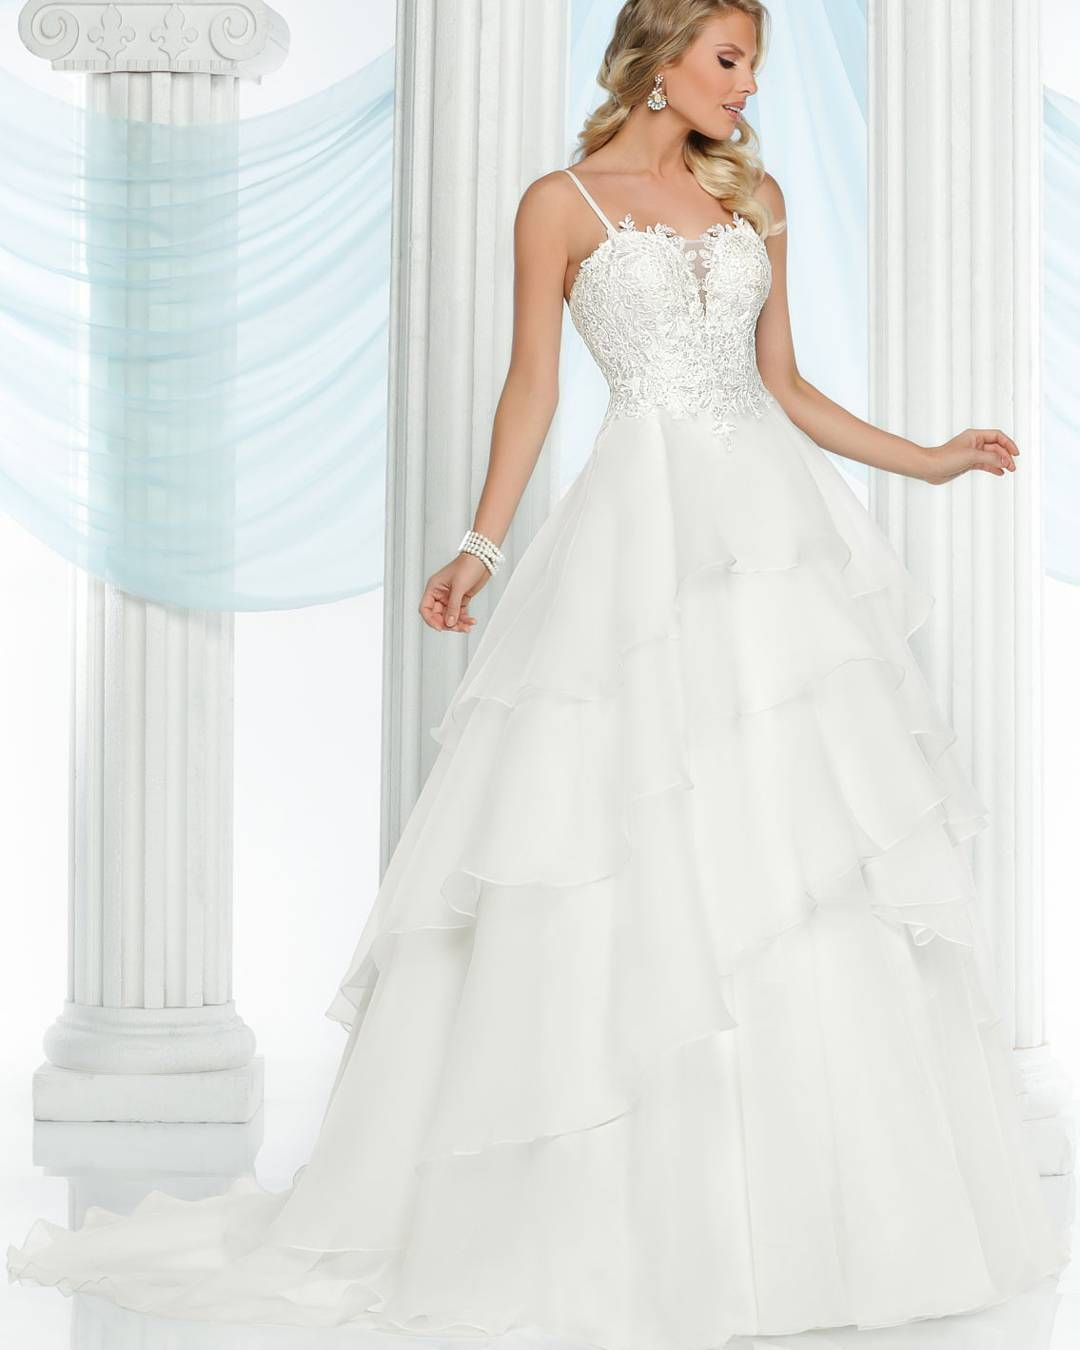 e63bb2b19 Style #50411 is simply stunning! It features lace on the bodice and a  layered skirt.